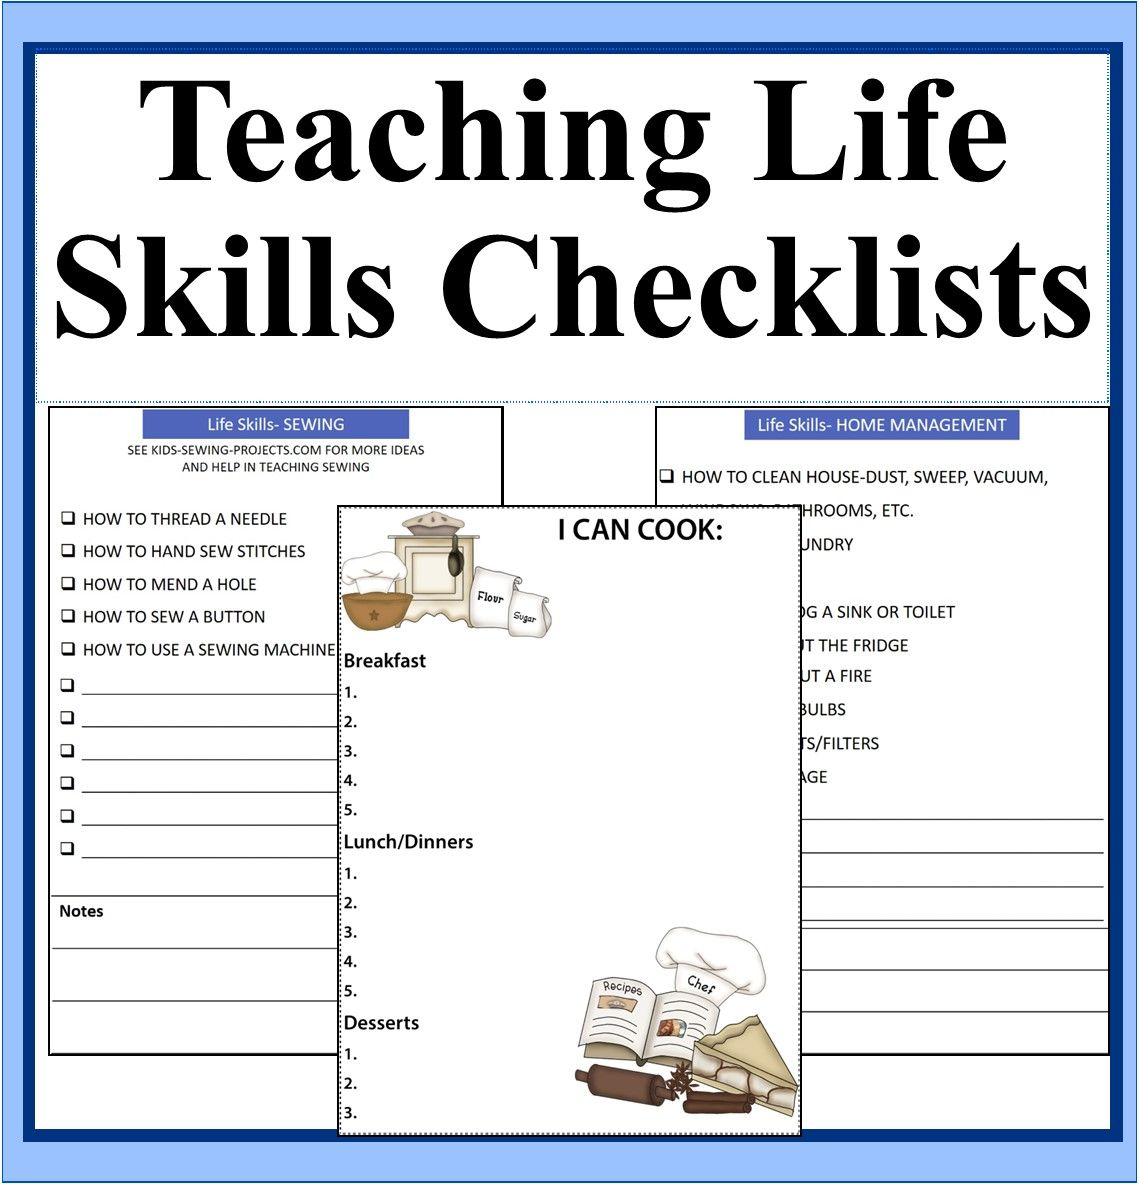 Teaching Life Skills Checklists And Resources Digital Download Teaching Life Skills Teaching Life Life Skills [ 1184 x 1139 Pixel ]